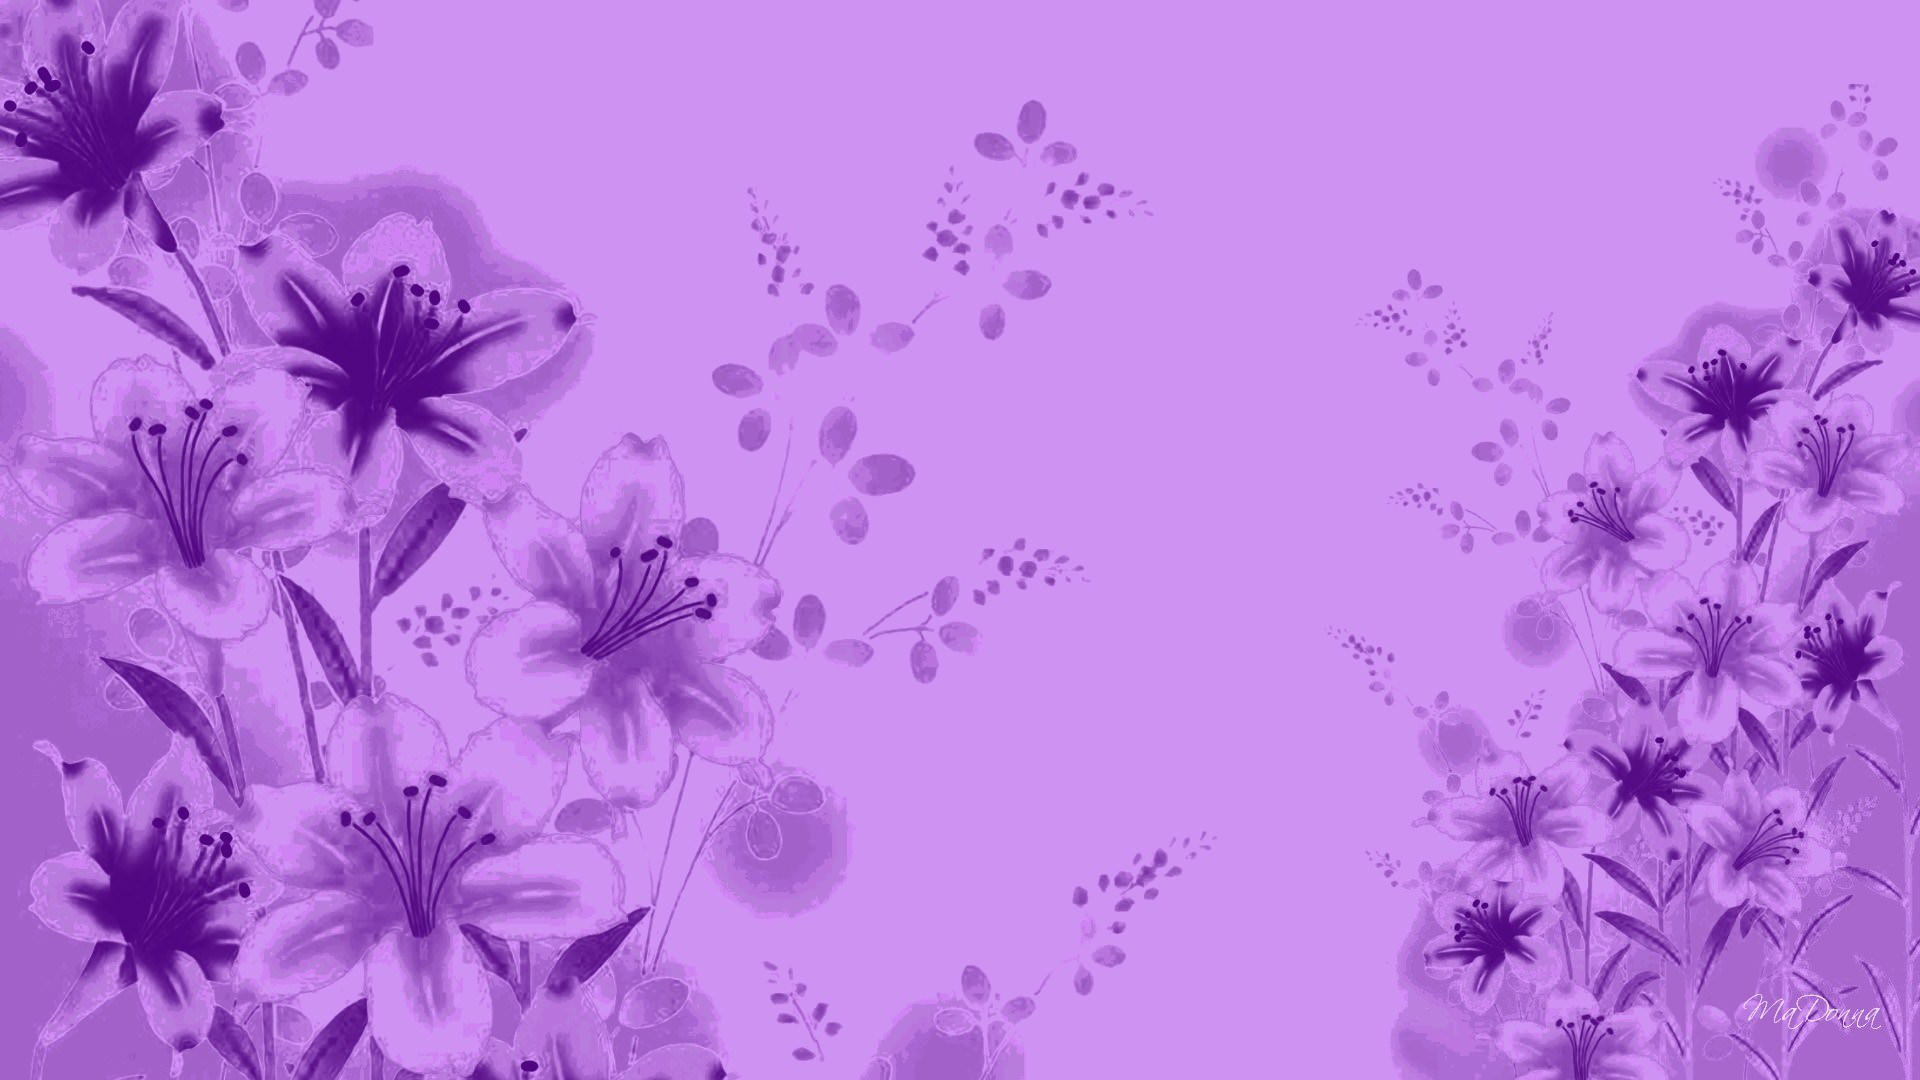 210+ Amazing Purple Backgrounds | Backgrounds | Design Trends